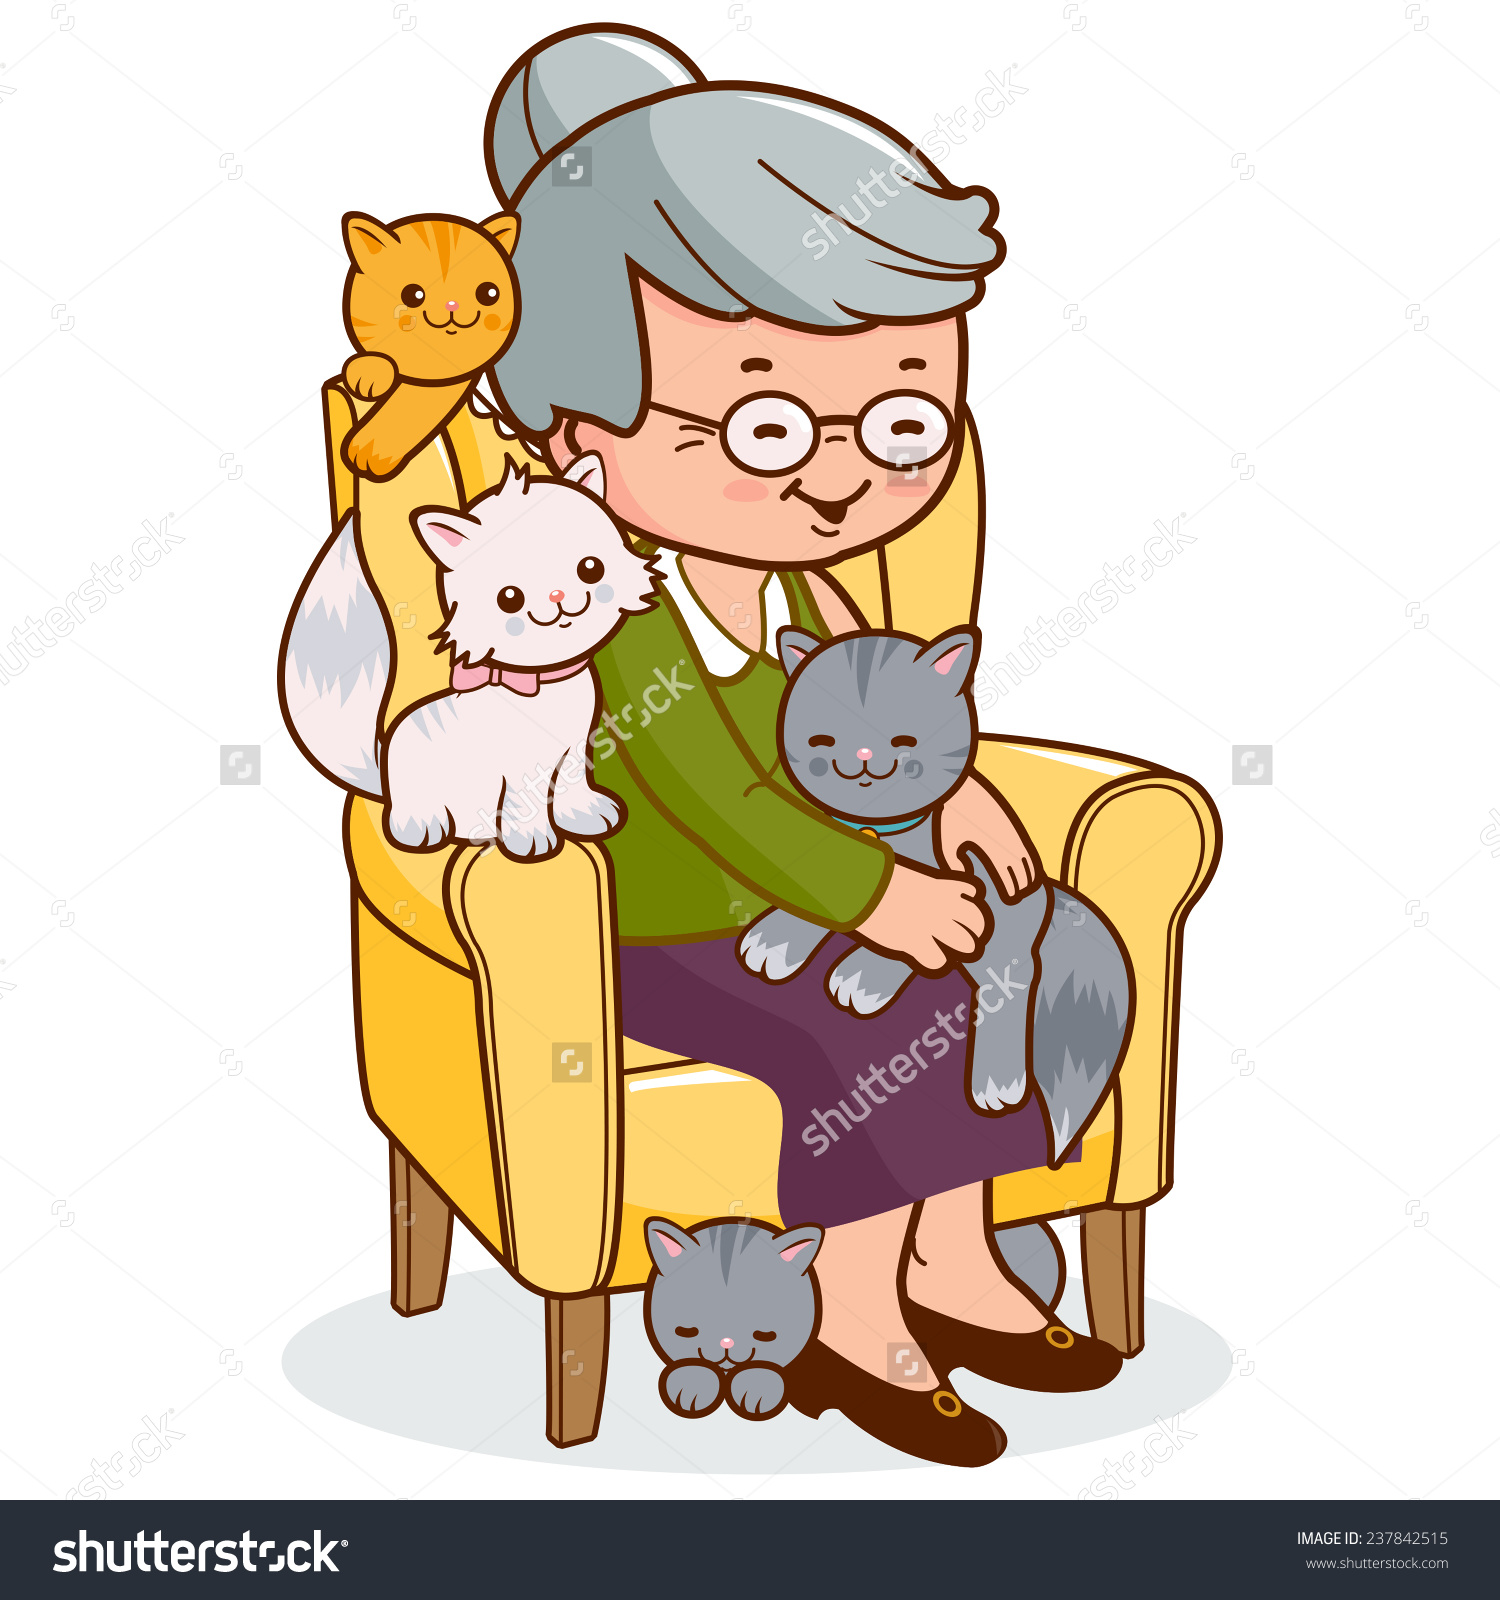 Clipart Old Woman Sitting.